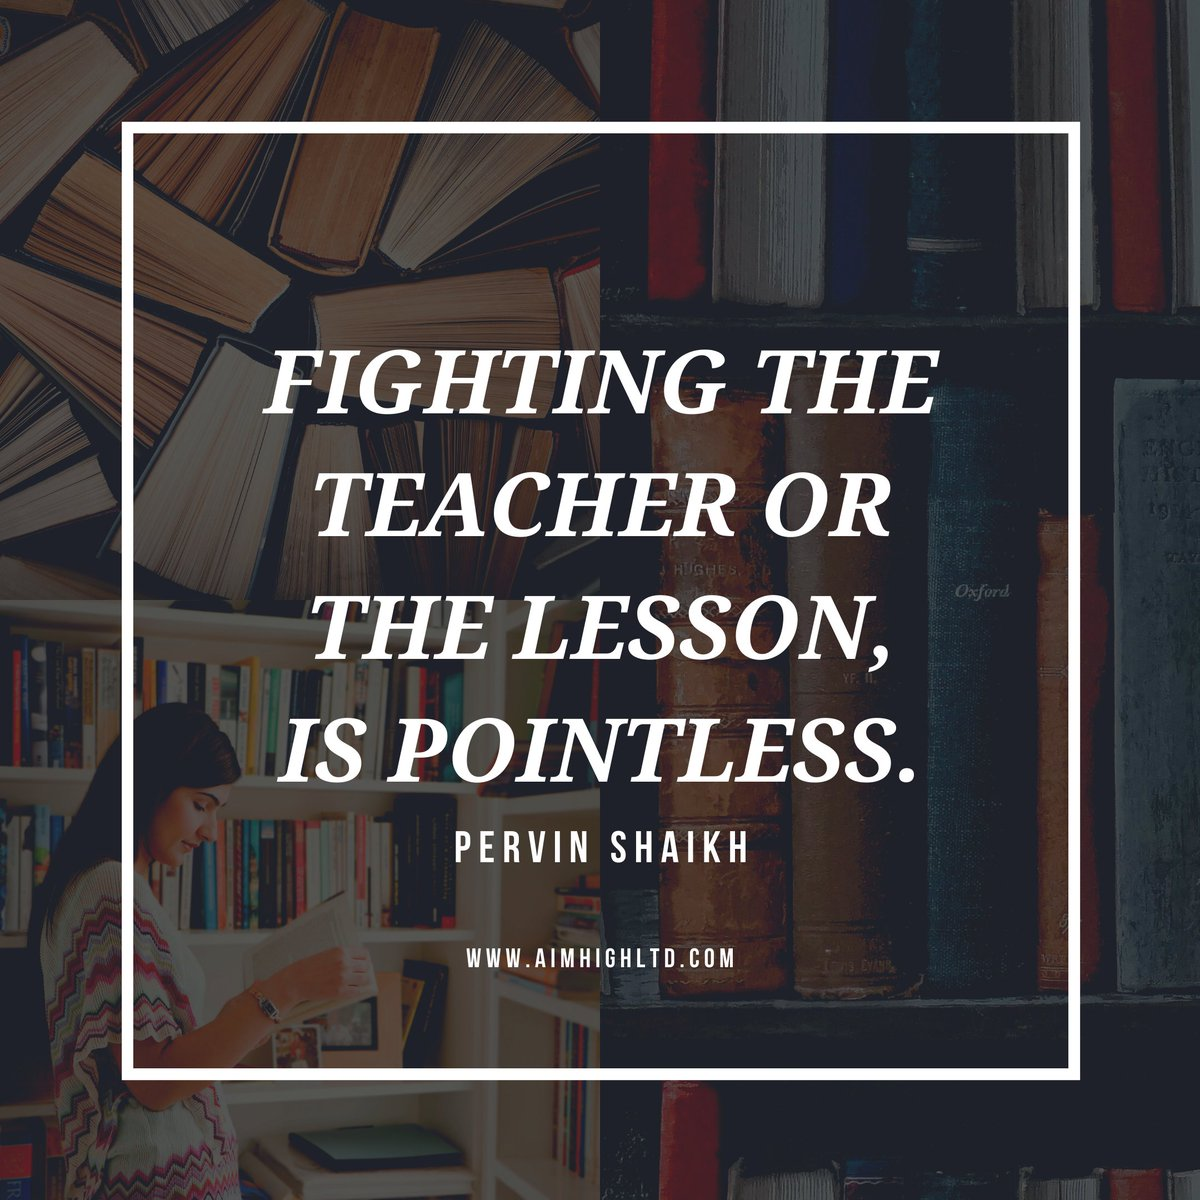 Fighting the teacher and the lesson is pointless. Both keep coming back until the lesson is learnt.     #AimHigh #makeyourownlane #entrepreneur #leadership #successtrain #defstar5 #mpgvip #startup #saturdaymotivation